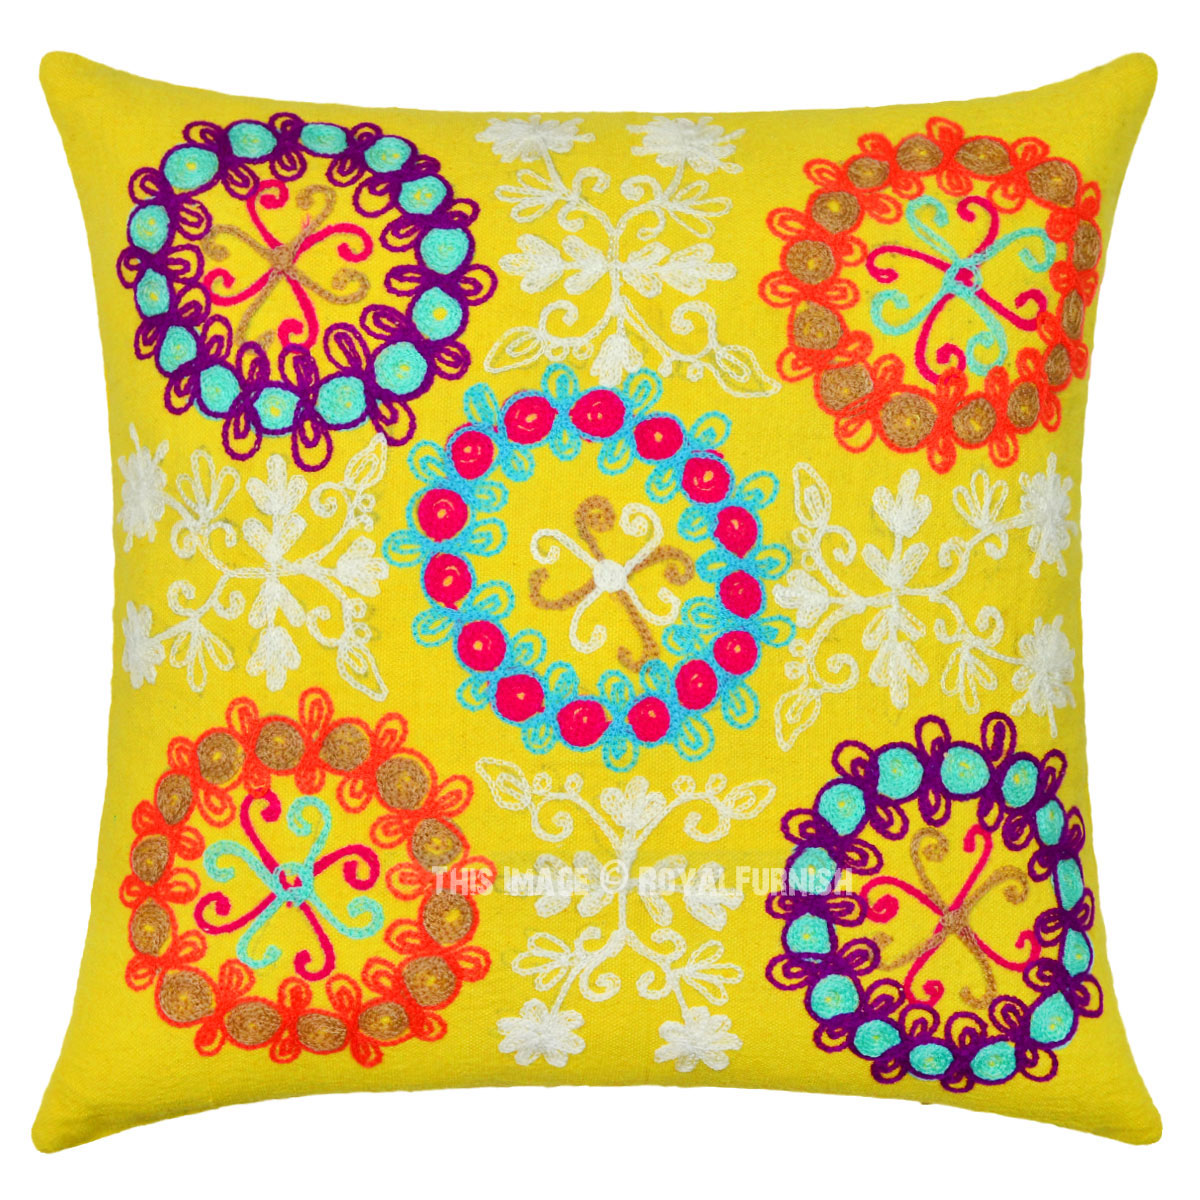 Yellow Embroidered Throw Pillows : Yellow Decorative Embroidery Indian Suzani Designer Throw Pillow Cover - RoyalFurnish.com